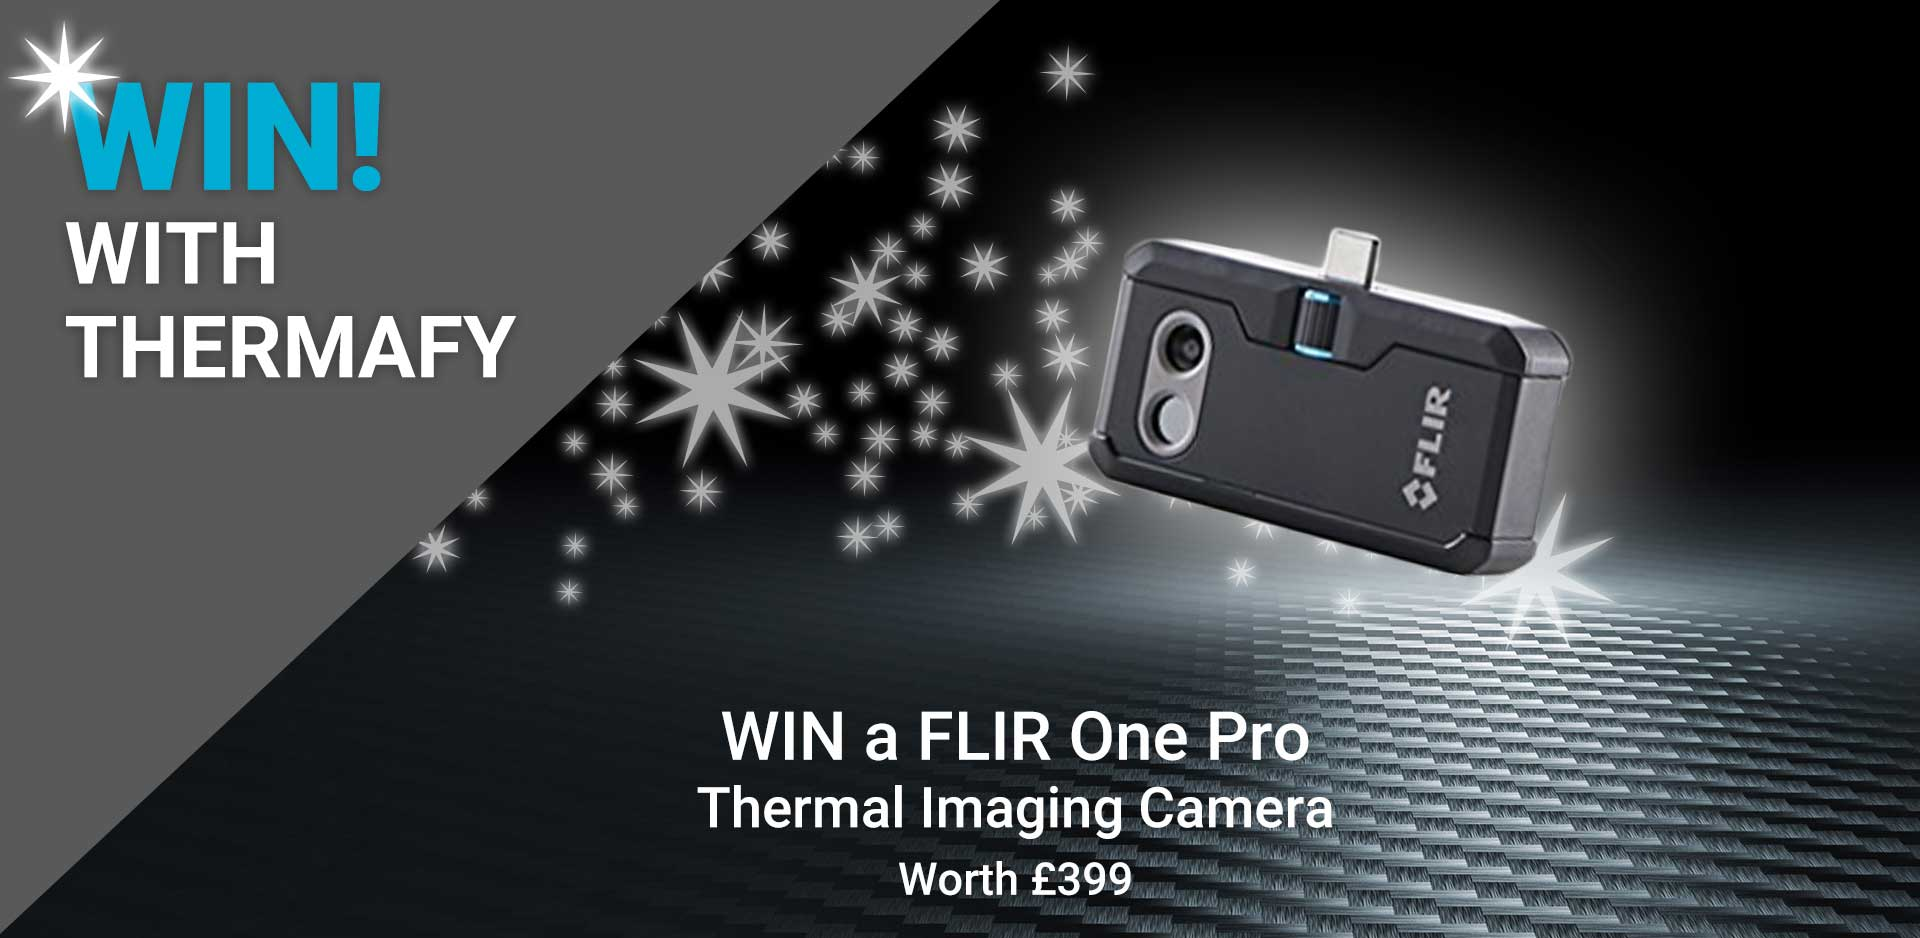 Competition - win a FLIR One Pro thermal imaging camera